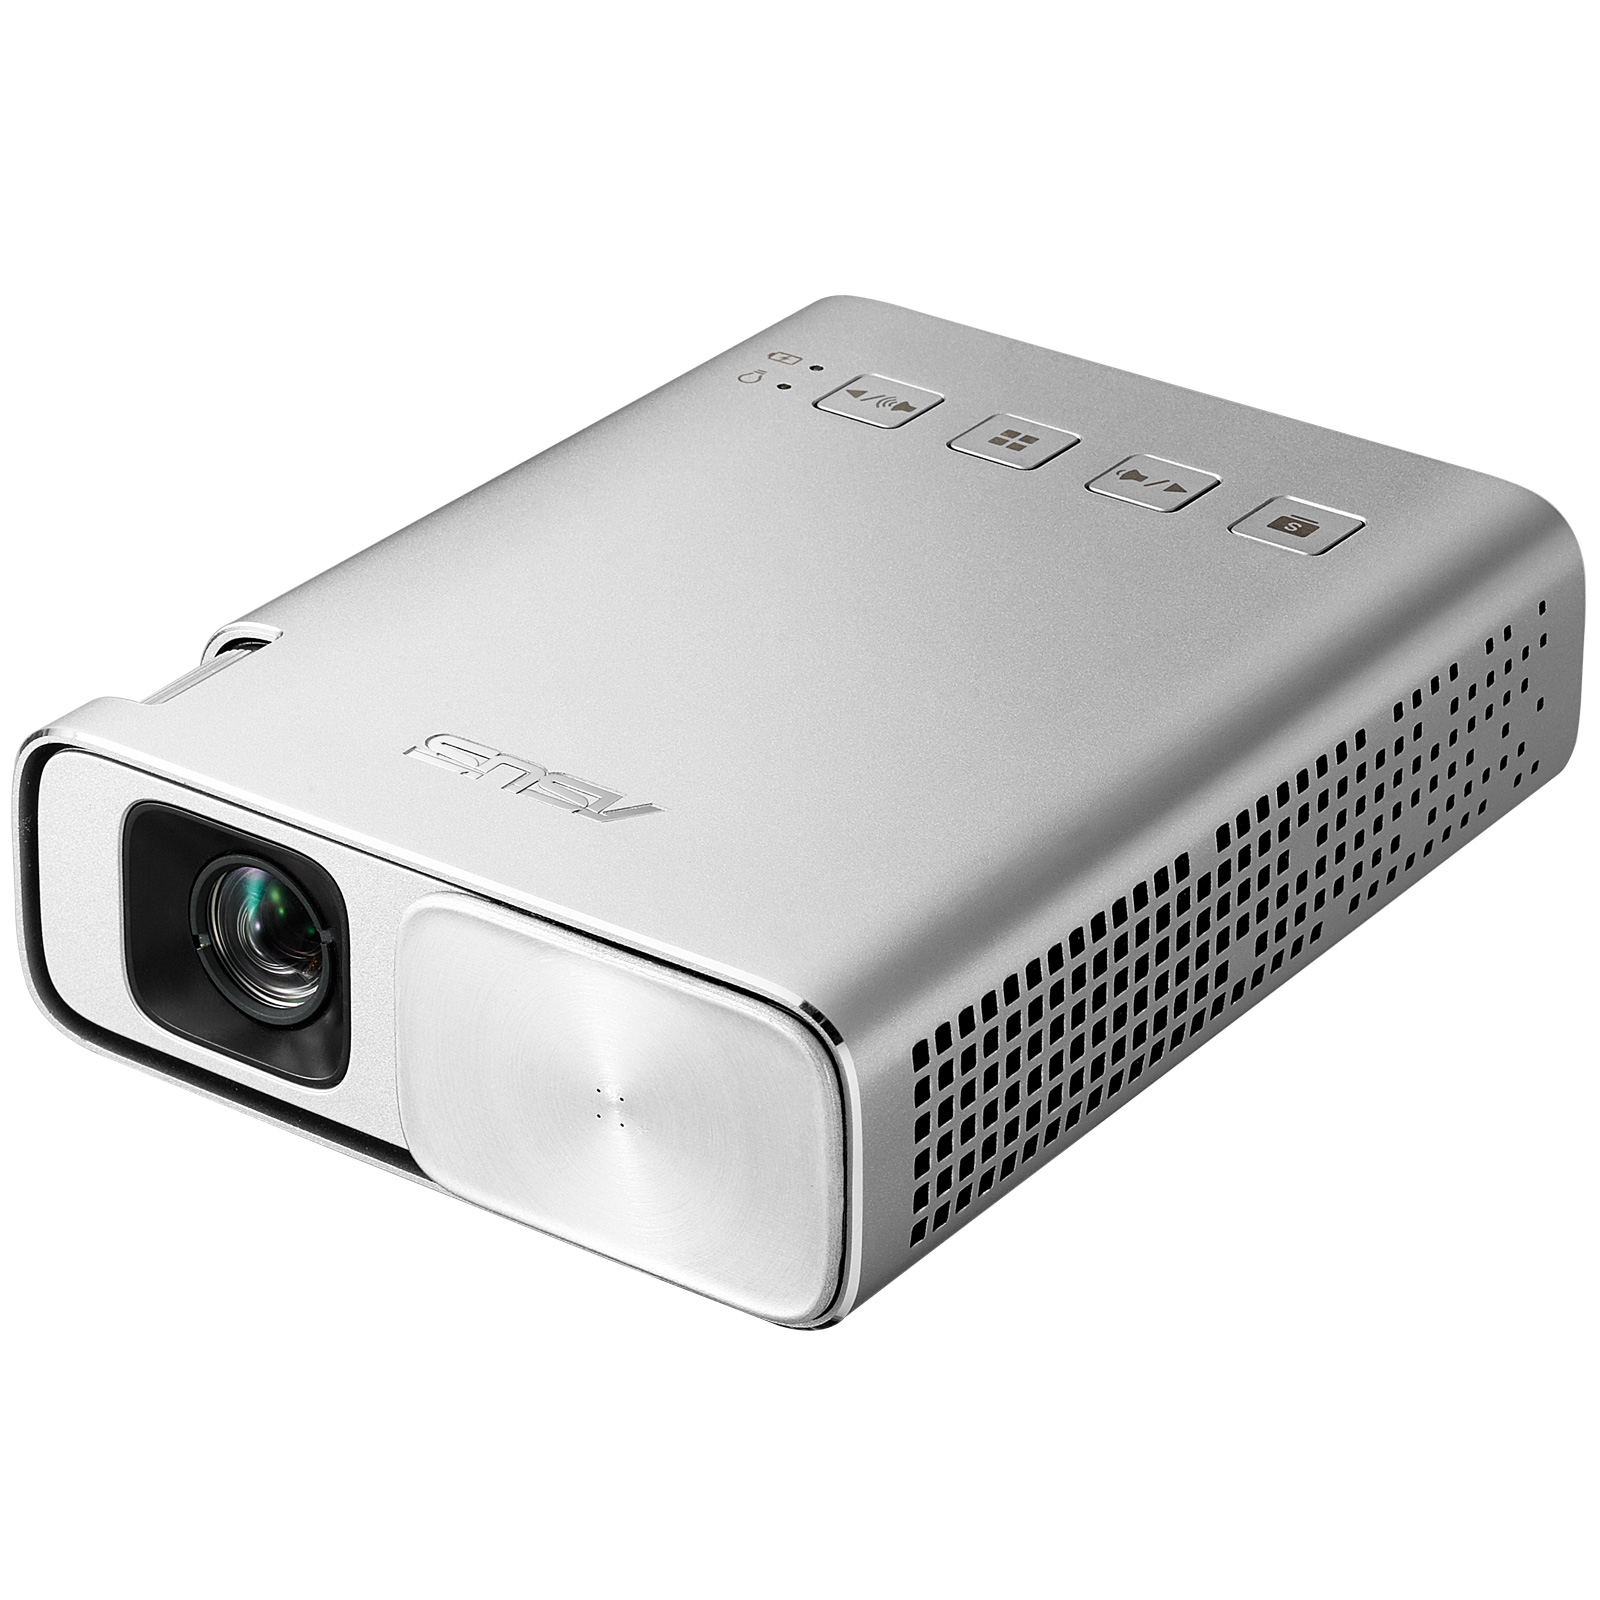 ASUS ZENBEAM E1 PORTABLE PROJECTOR 150ANSI LUMENS DLP WVGA (854X480) SILVER DATA